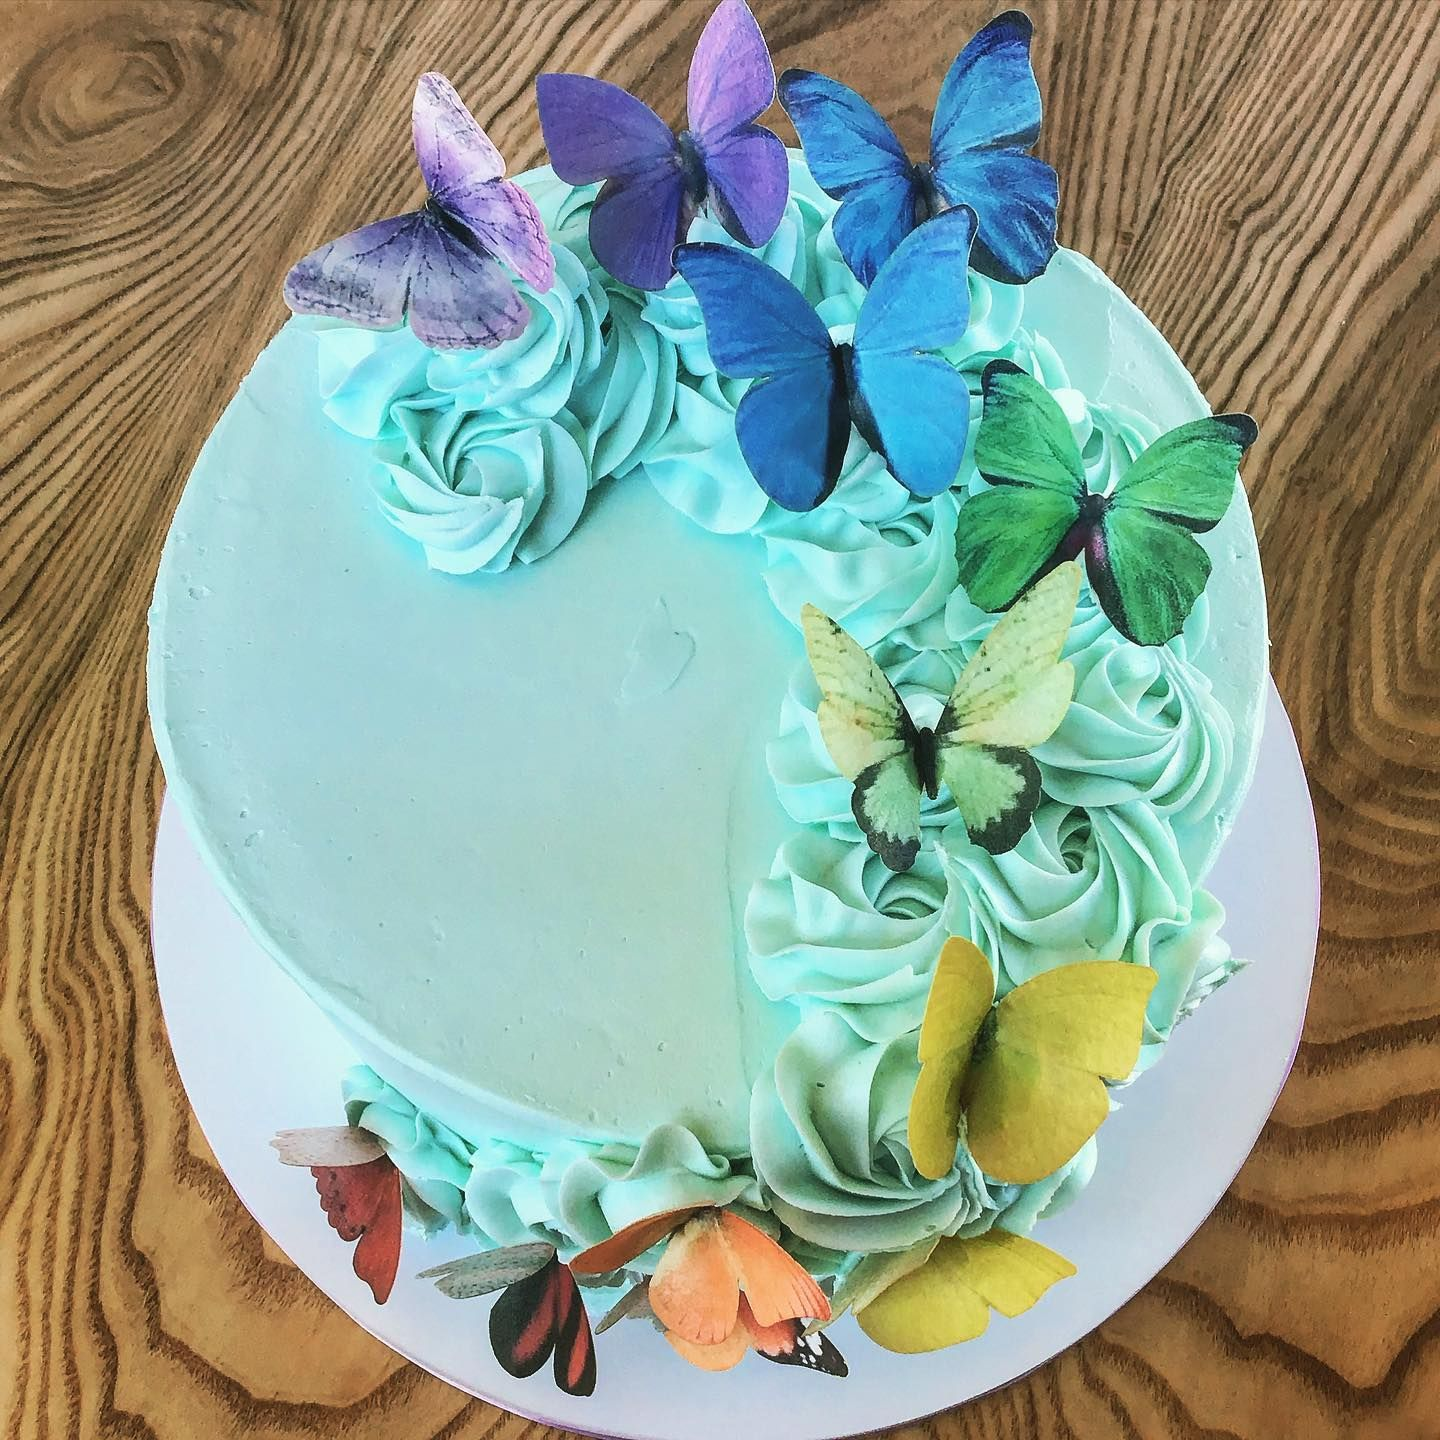 Butterfly Cake Butterfly Cakes Carnival Birthday Cakes Cake Decorating Ideas Unique